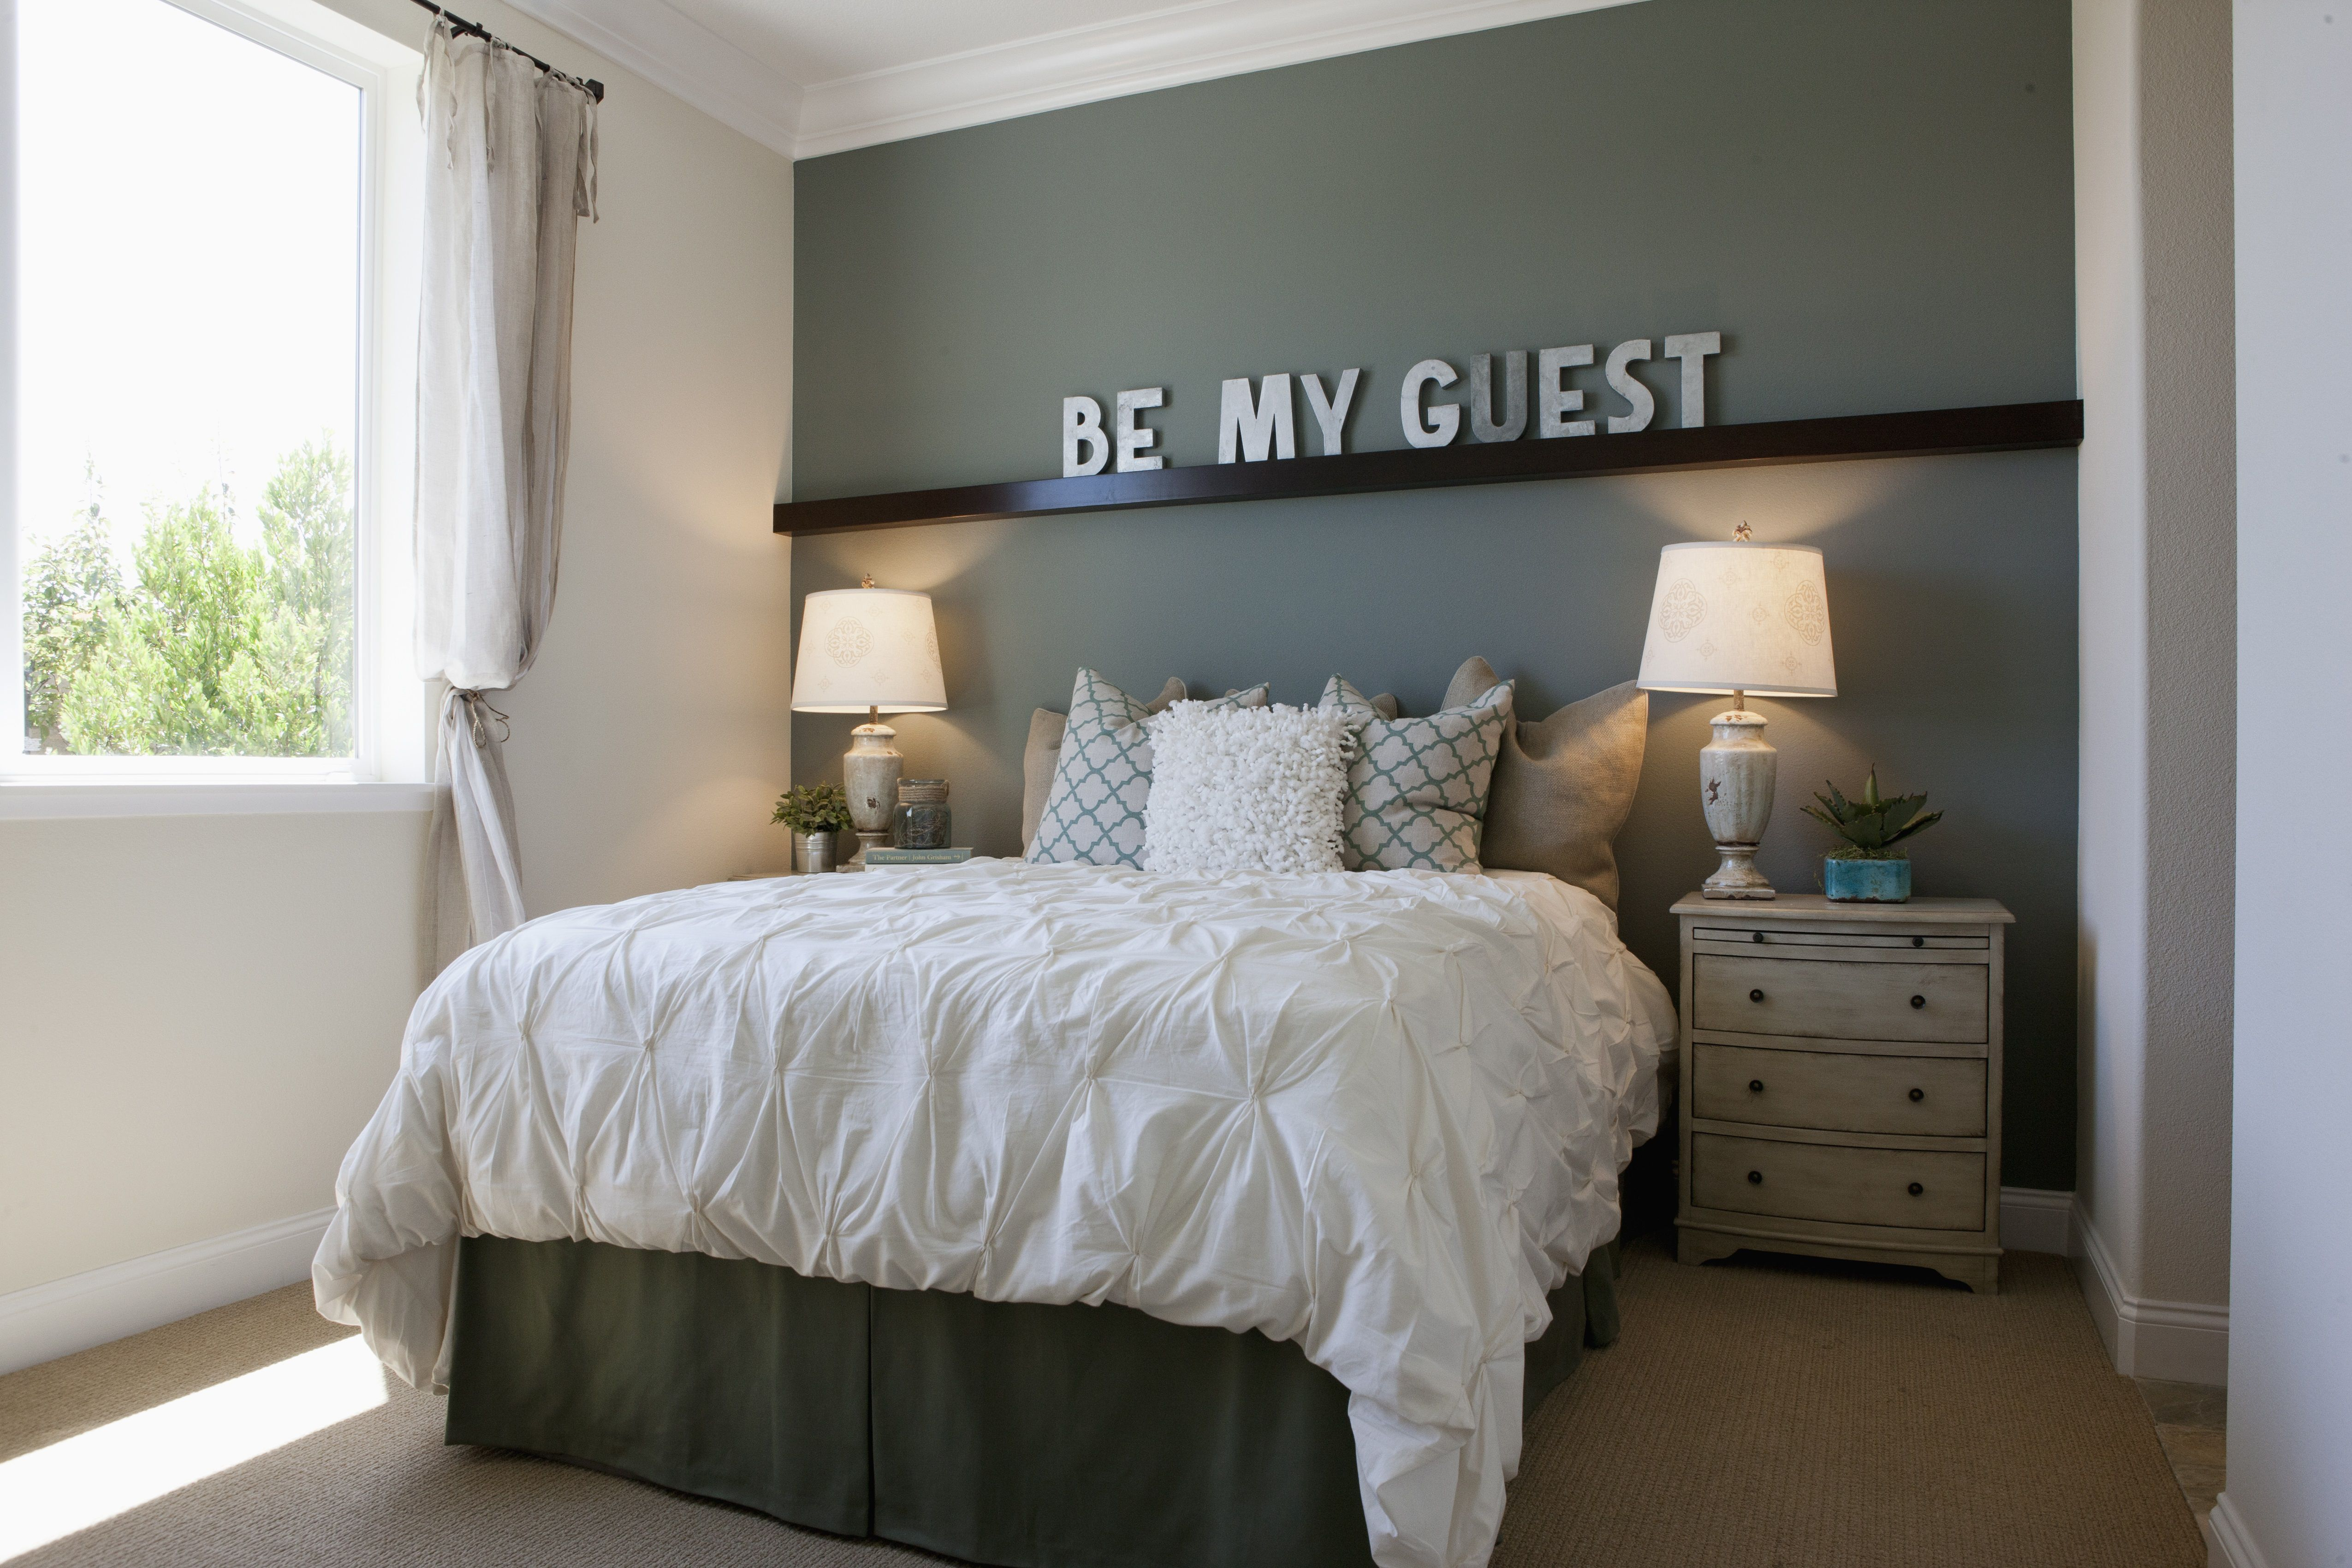 18 Tips to Make Your Guest Room Feel Like Home